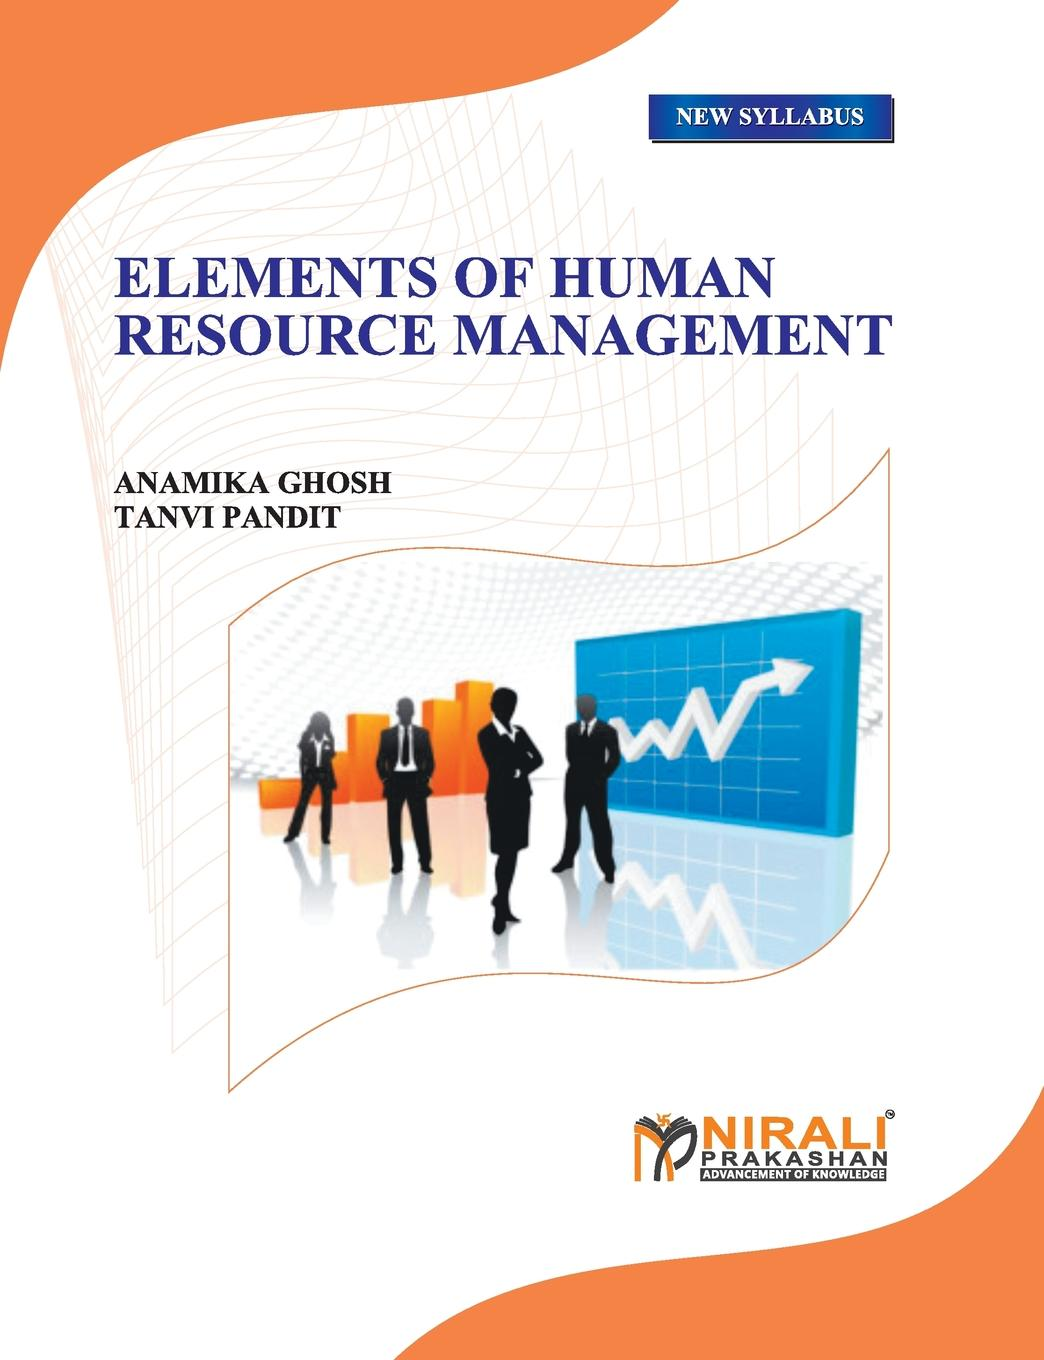 ANAMIKA GHOSH, TANVI PANDIT ELEMENTS OF HUMAN RESOURCE MANAGEMENT motivation and action